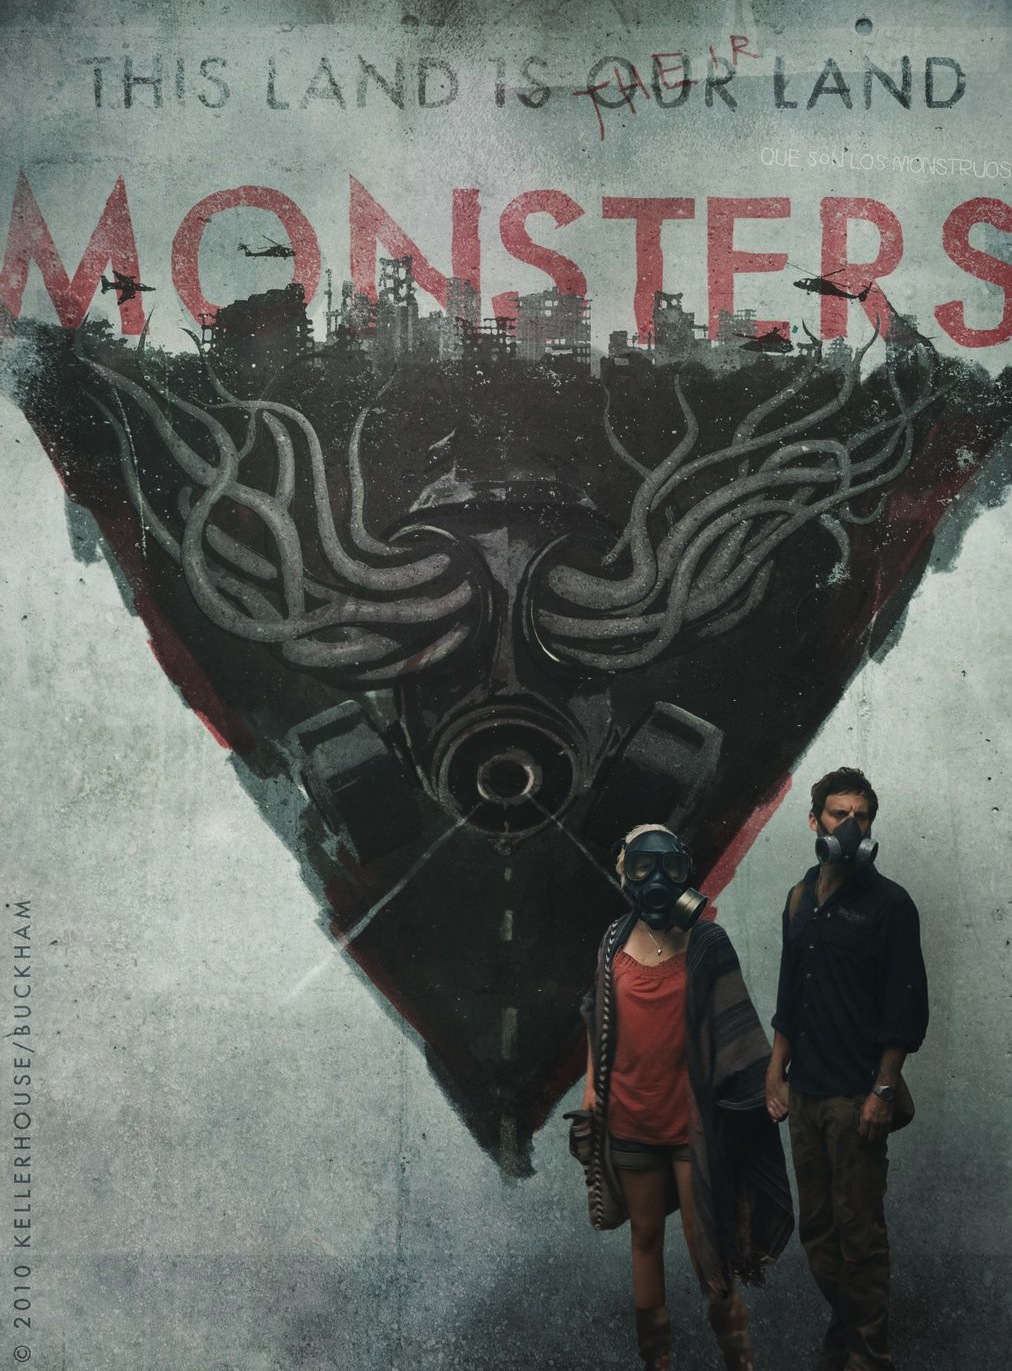 monsters-film-edwards